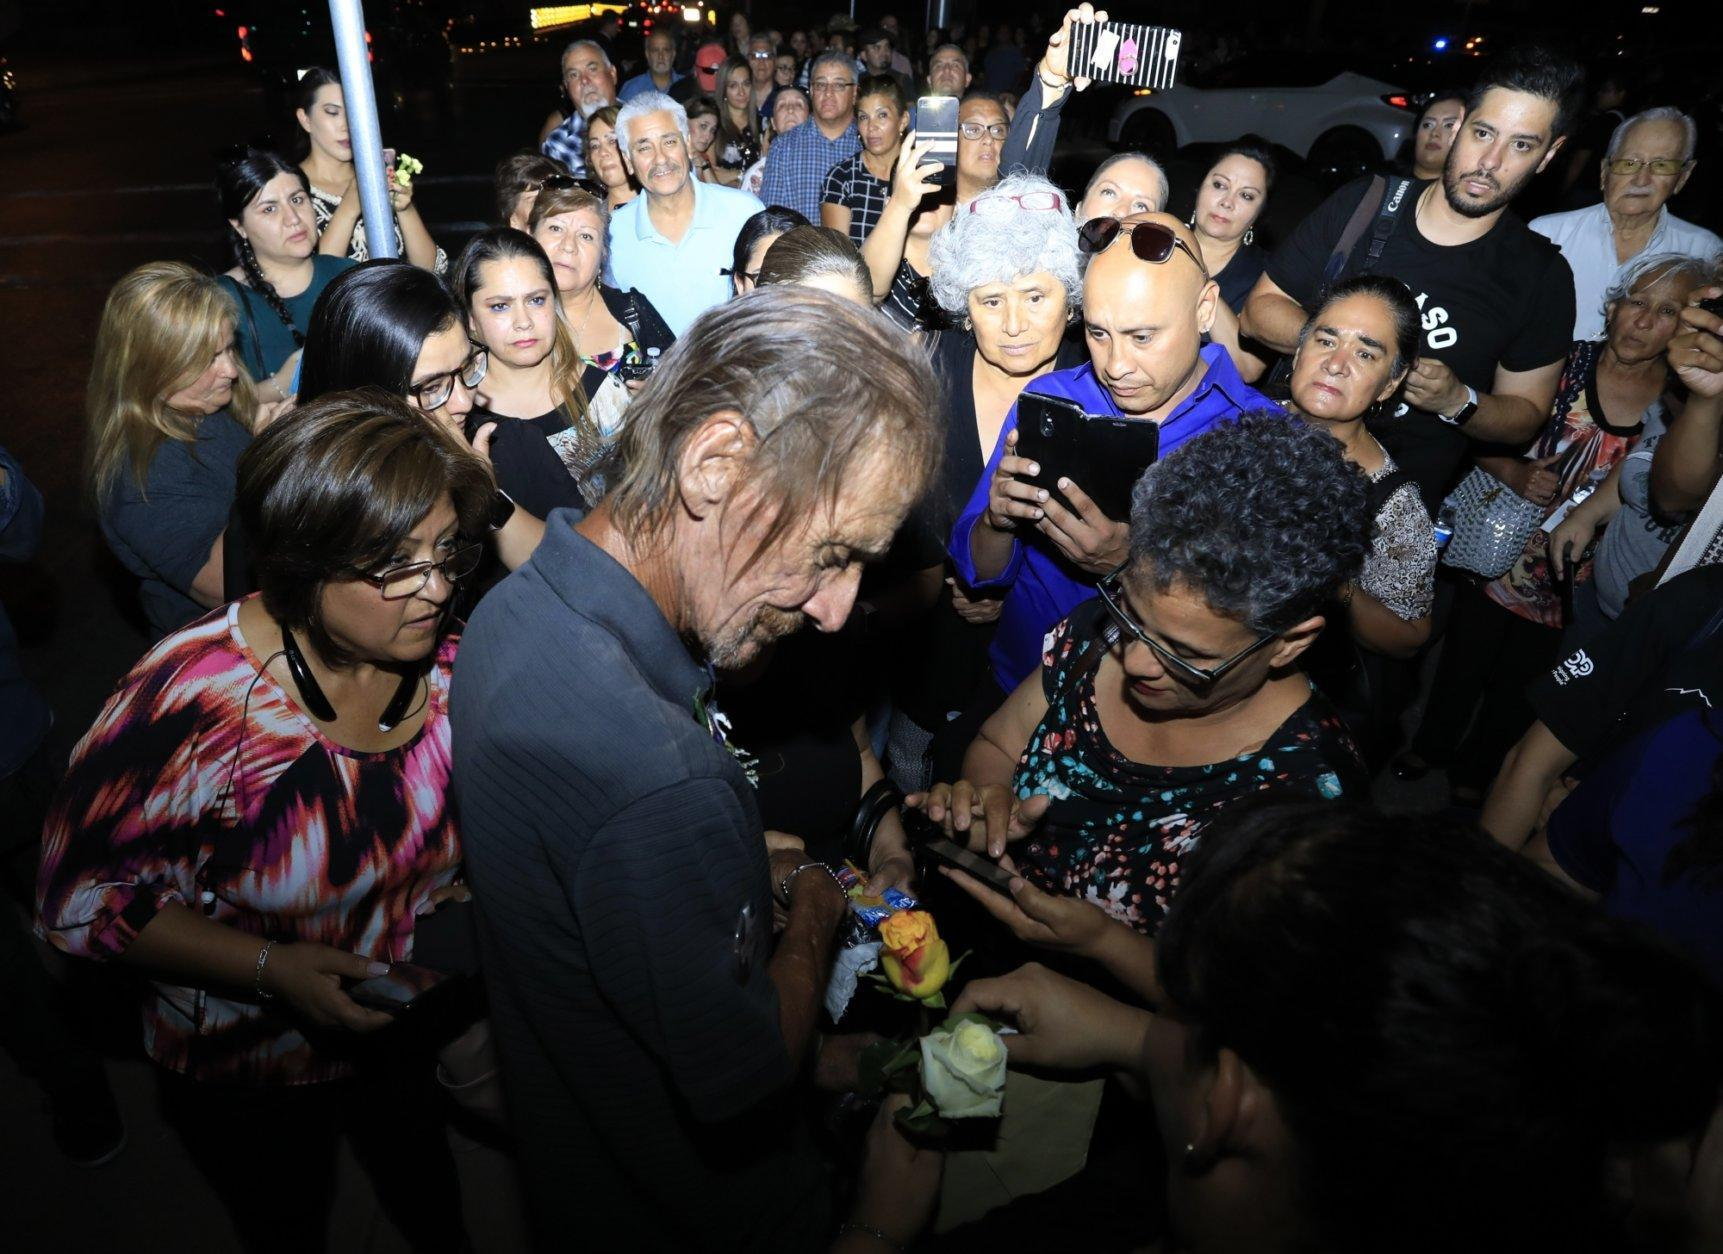 Antonio Bosco, husband of Margie Reckard who lost her life during a shooting, is offered condolences with flowers Friday, Aug. 16, 2019, in El Paso, Texas. Reckard was killed during the mass shooting on Aug. 3. (AP Photo/Jorge Salgado)